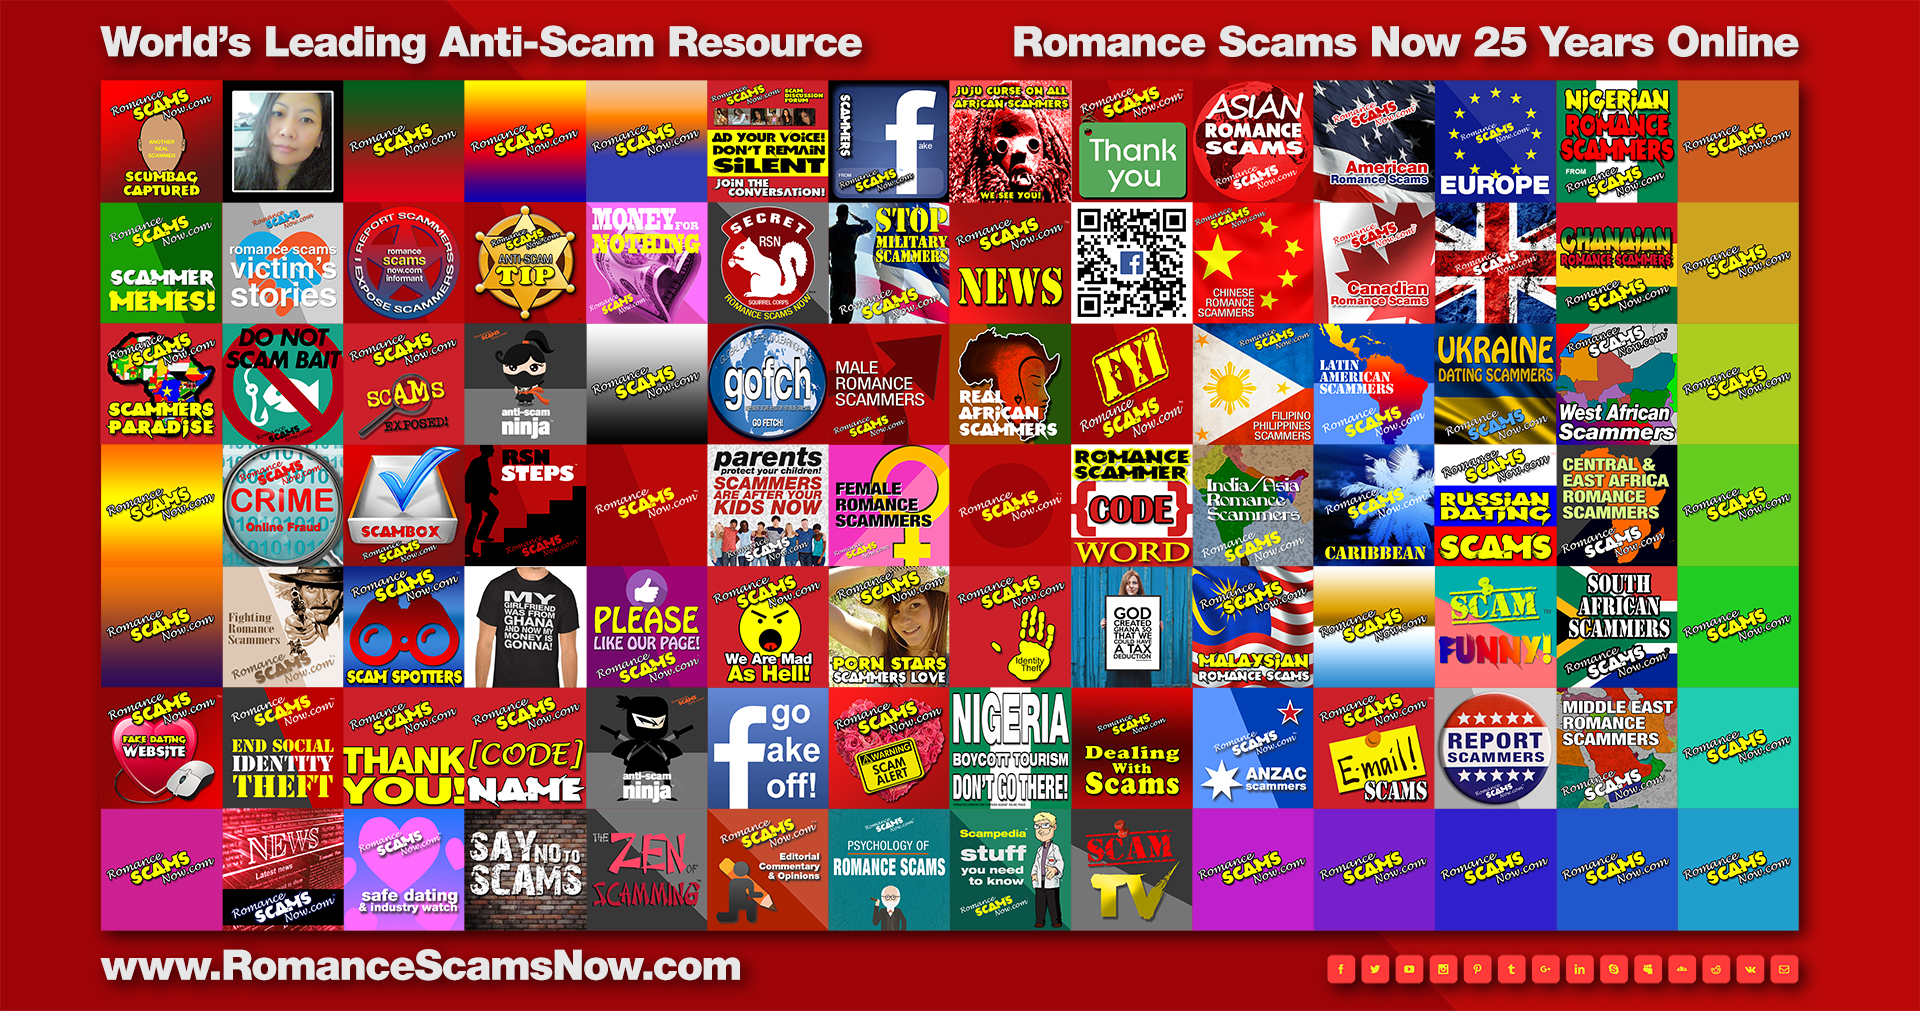 The Romance Scams Now™ 25 years online poster=Romance-Scams-Now-Poster-2016 [Right Click To Download] Copyright © 2016